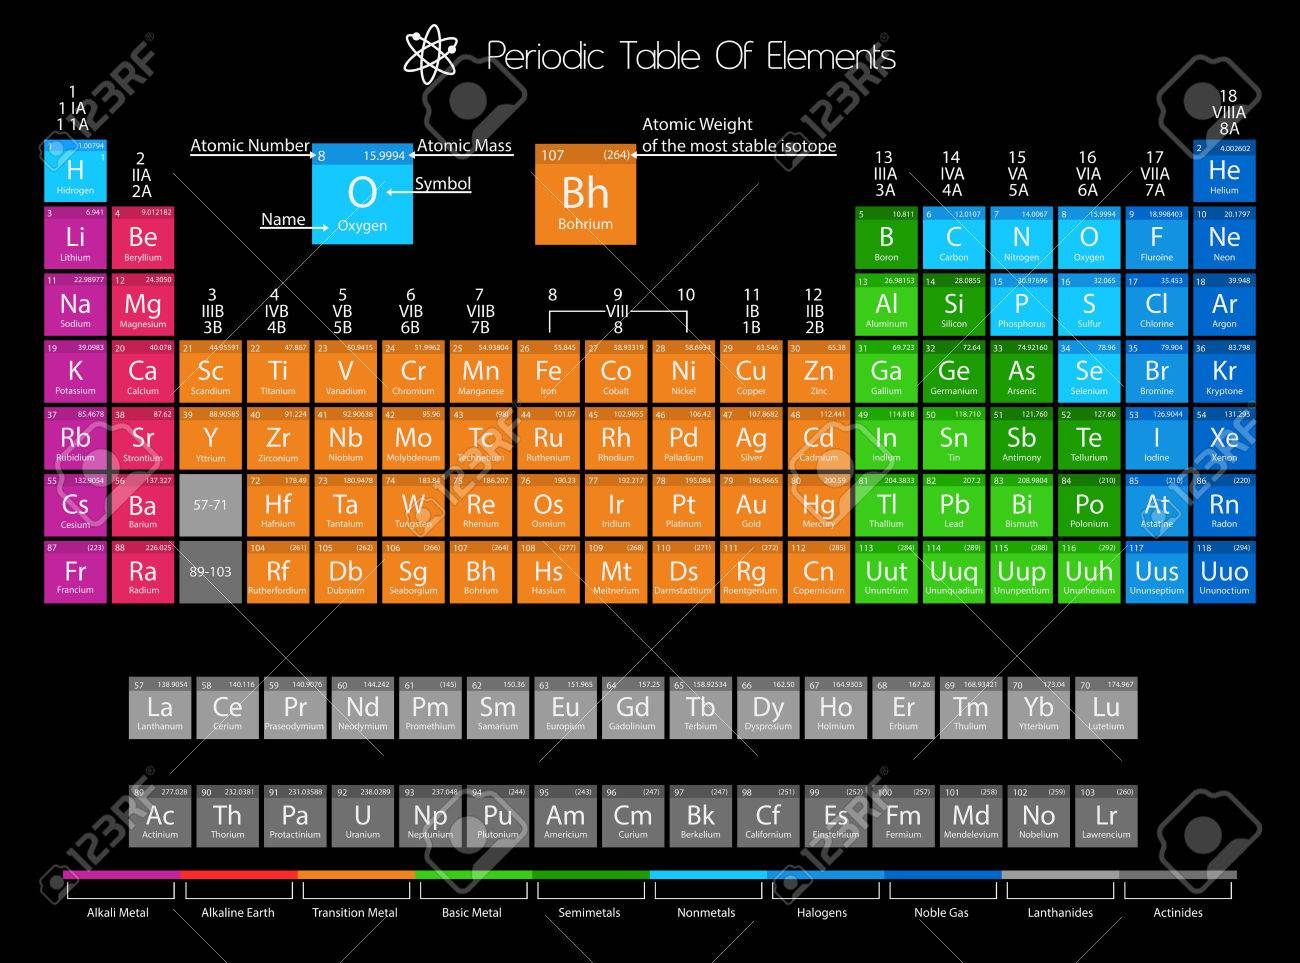 10213 periodic table cliparts stock vector and royalty free periodic table of elements with color delimitation urtaz Image collections